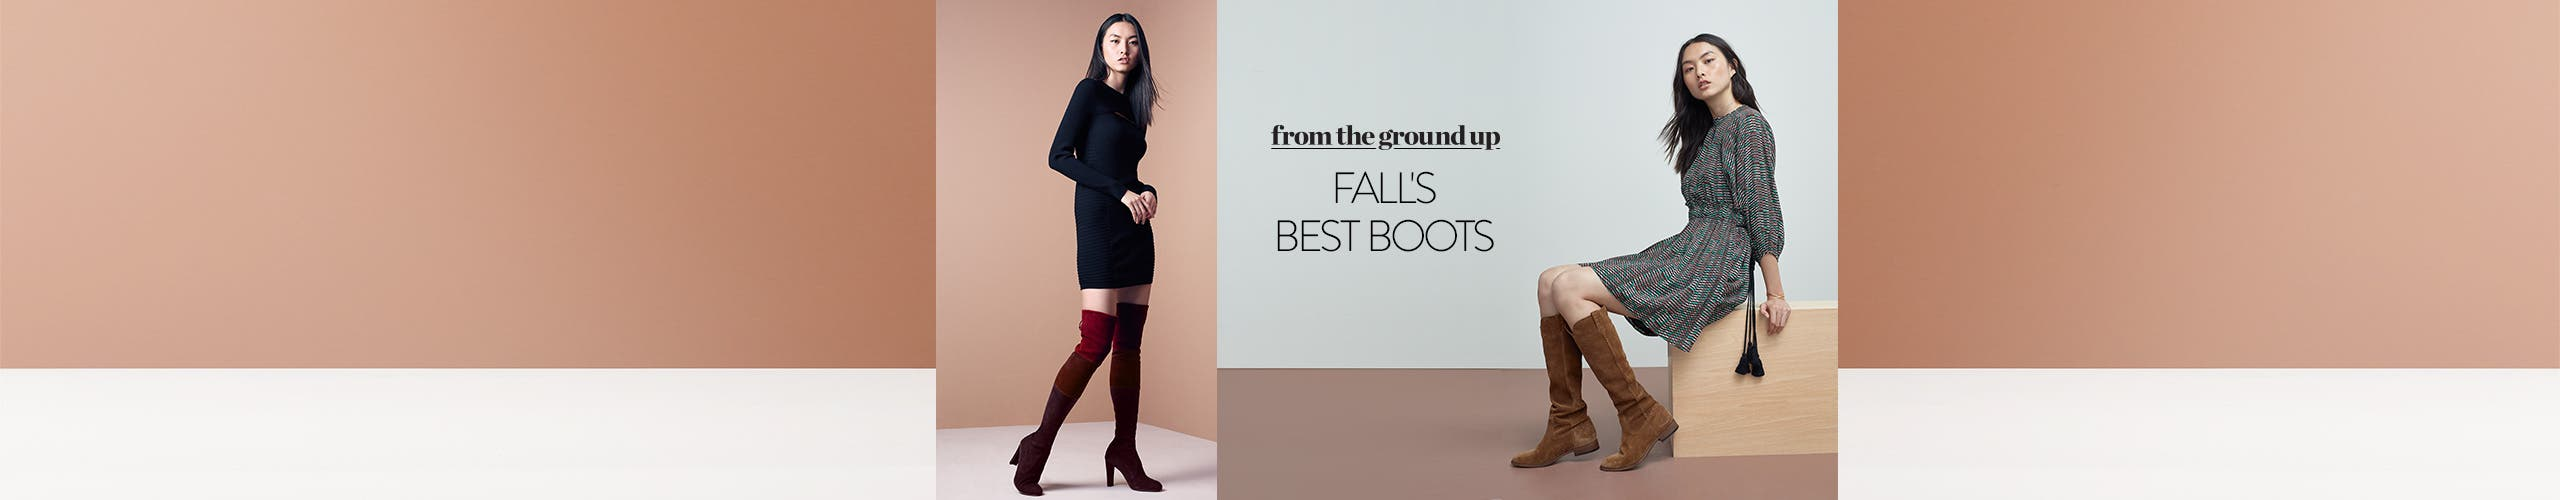 From the ground up: fall's best boots for women.